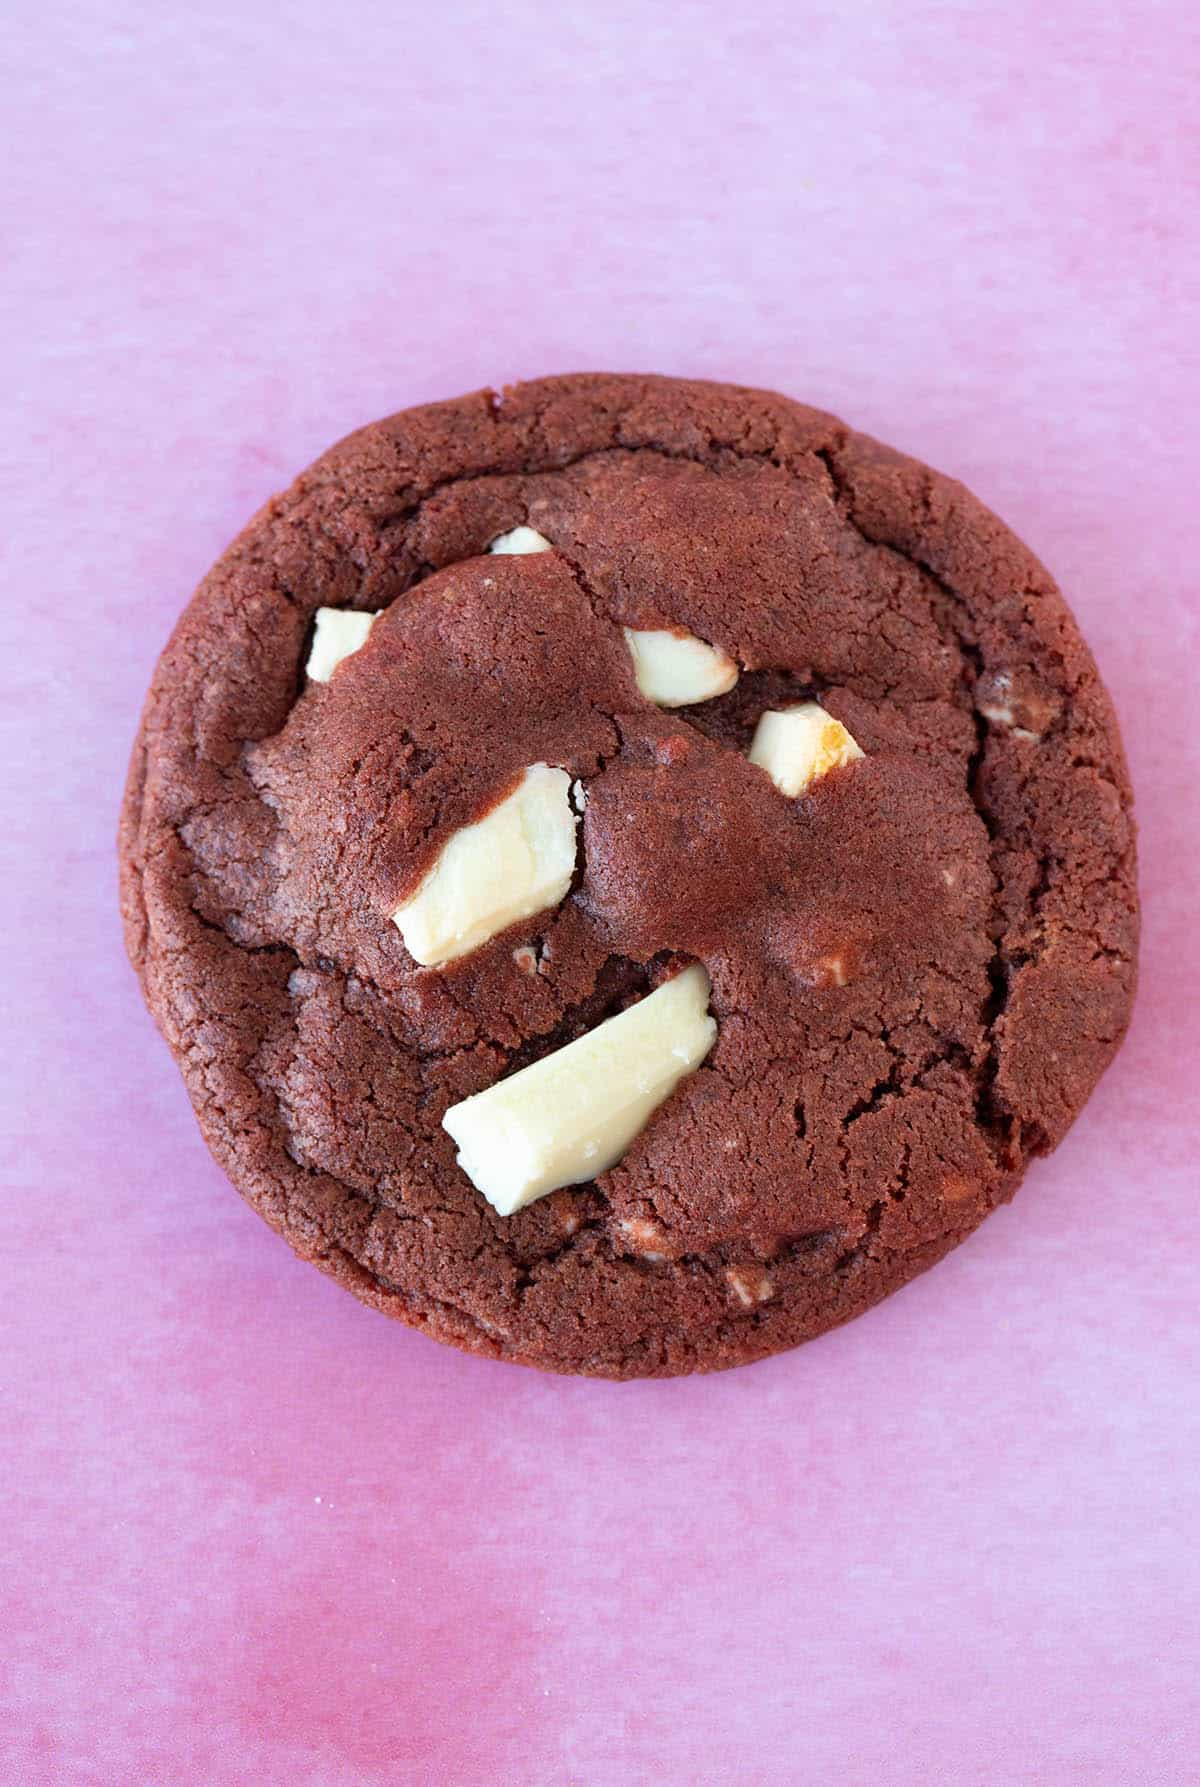 Close up view of a Red Velvet Cookie on a pink background.